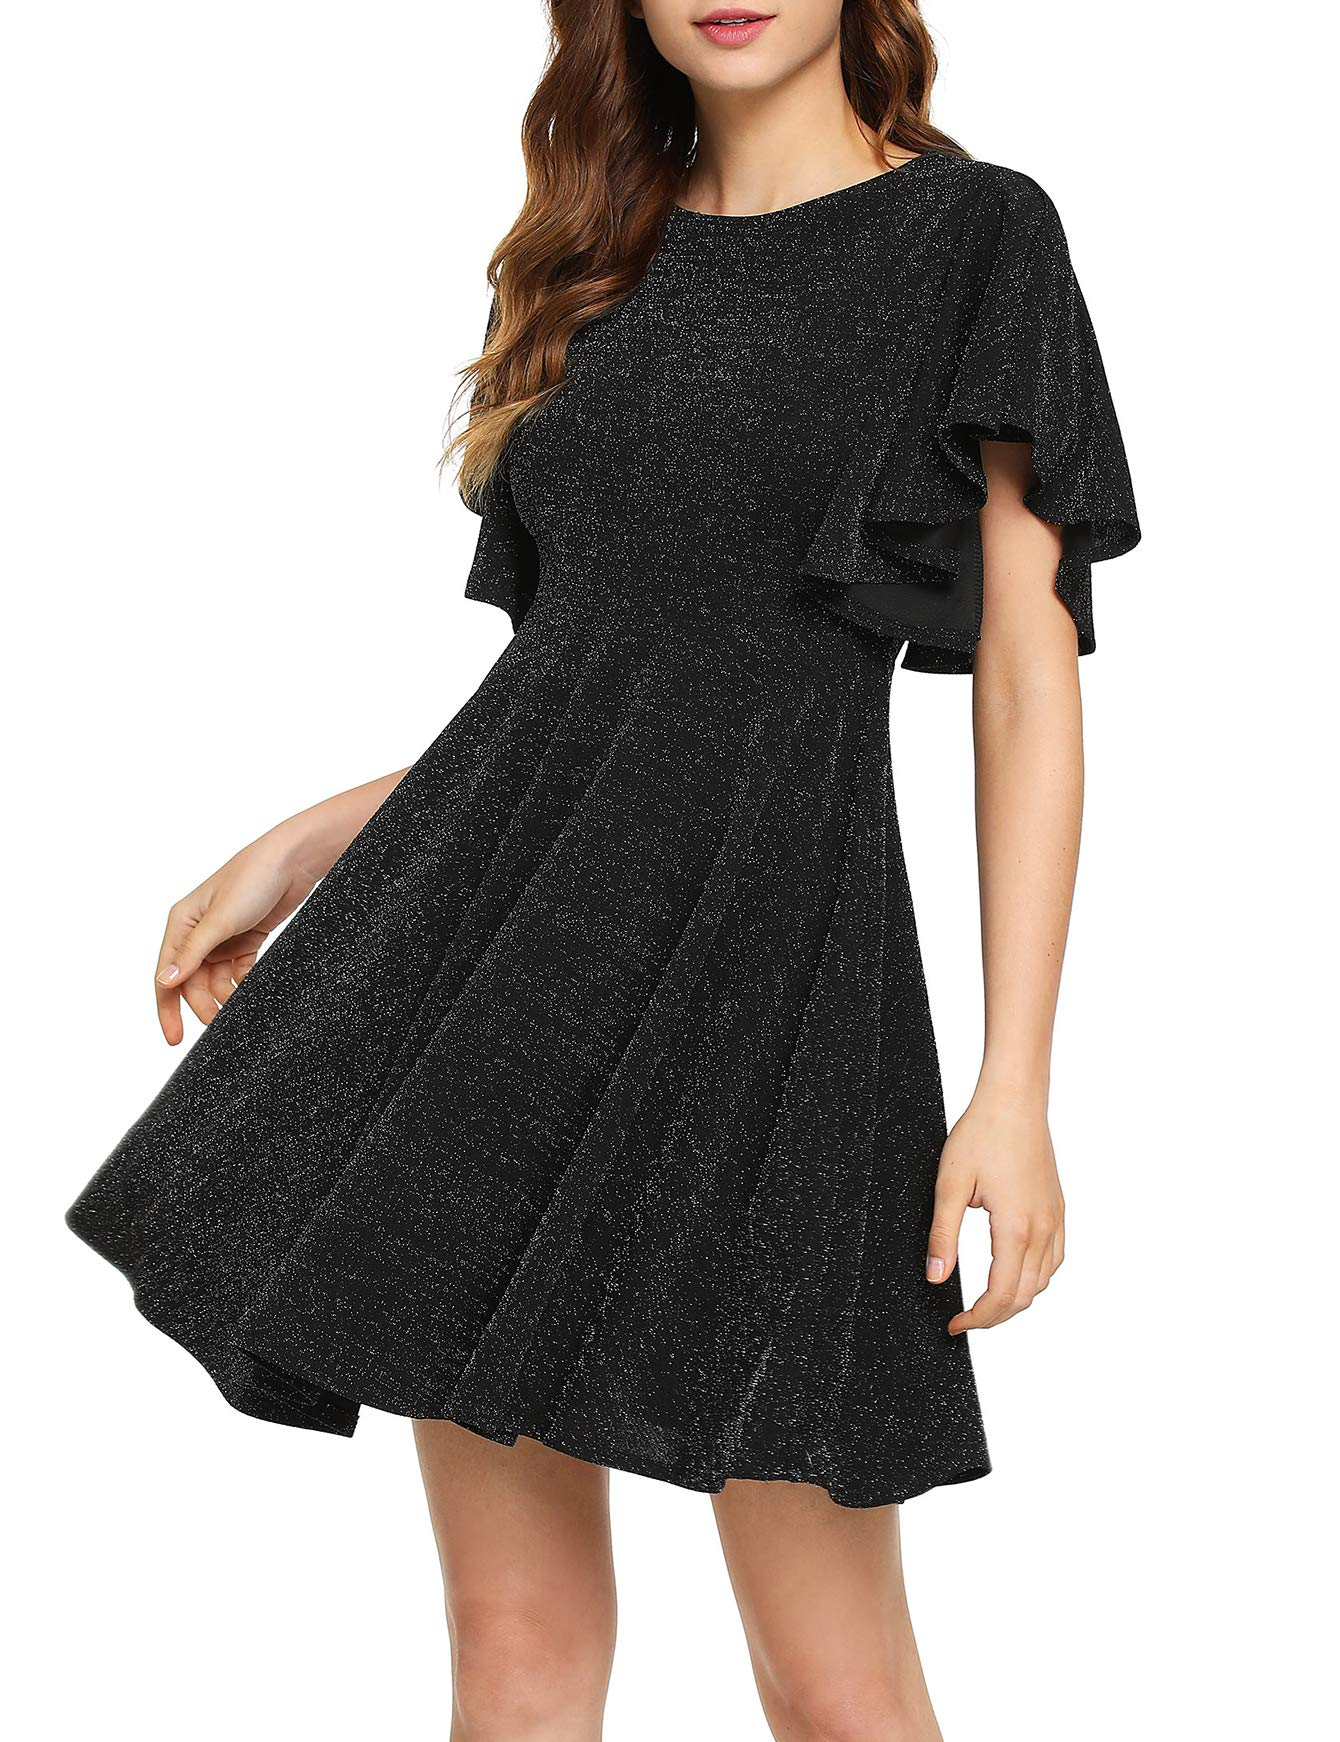 Party Dresses - Women's Stretchy A Line Swing Flared Skater Cocktail Party Dress